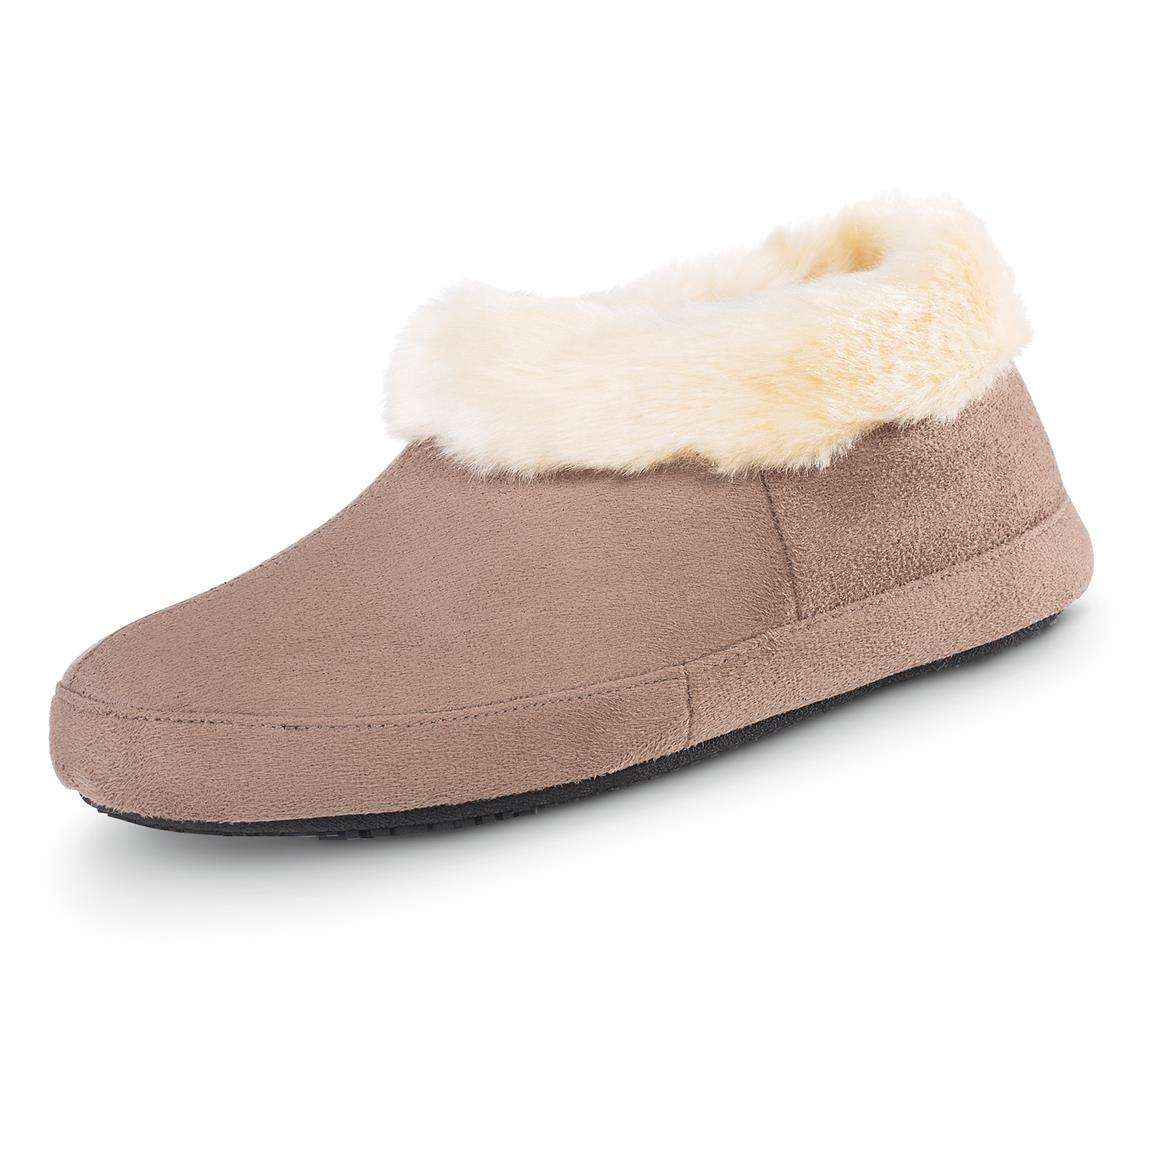 Woodlands Women's Erica Low Bootie Slippers, Taupe